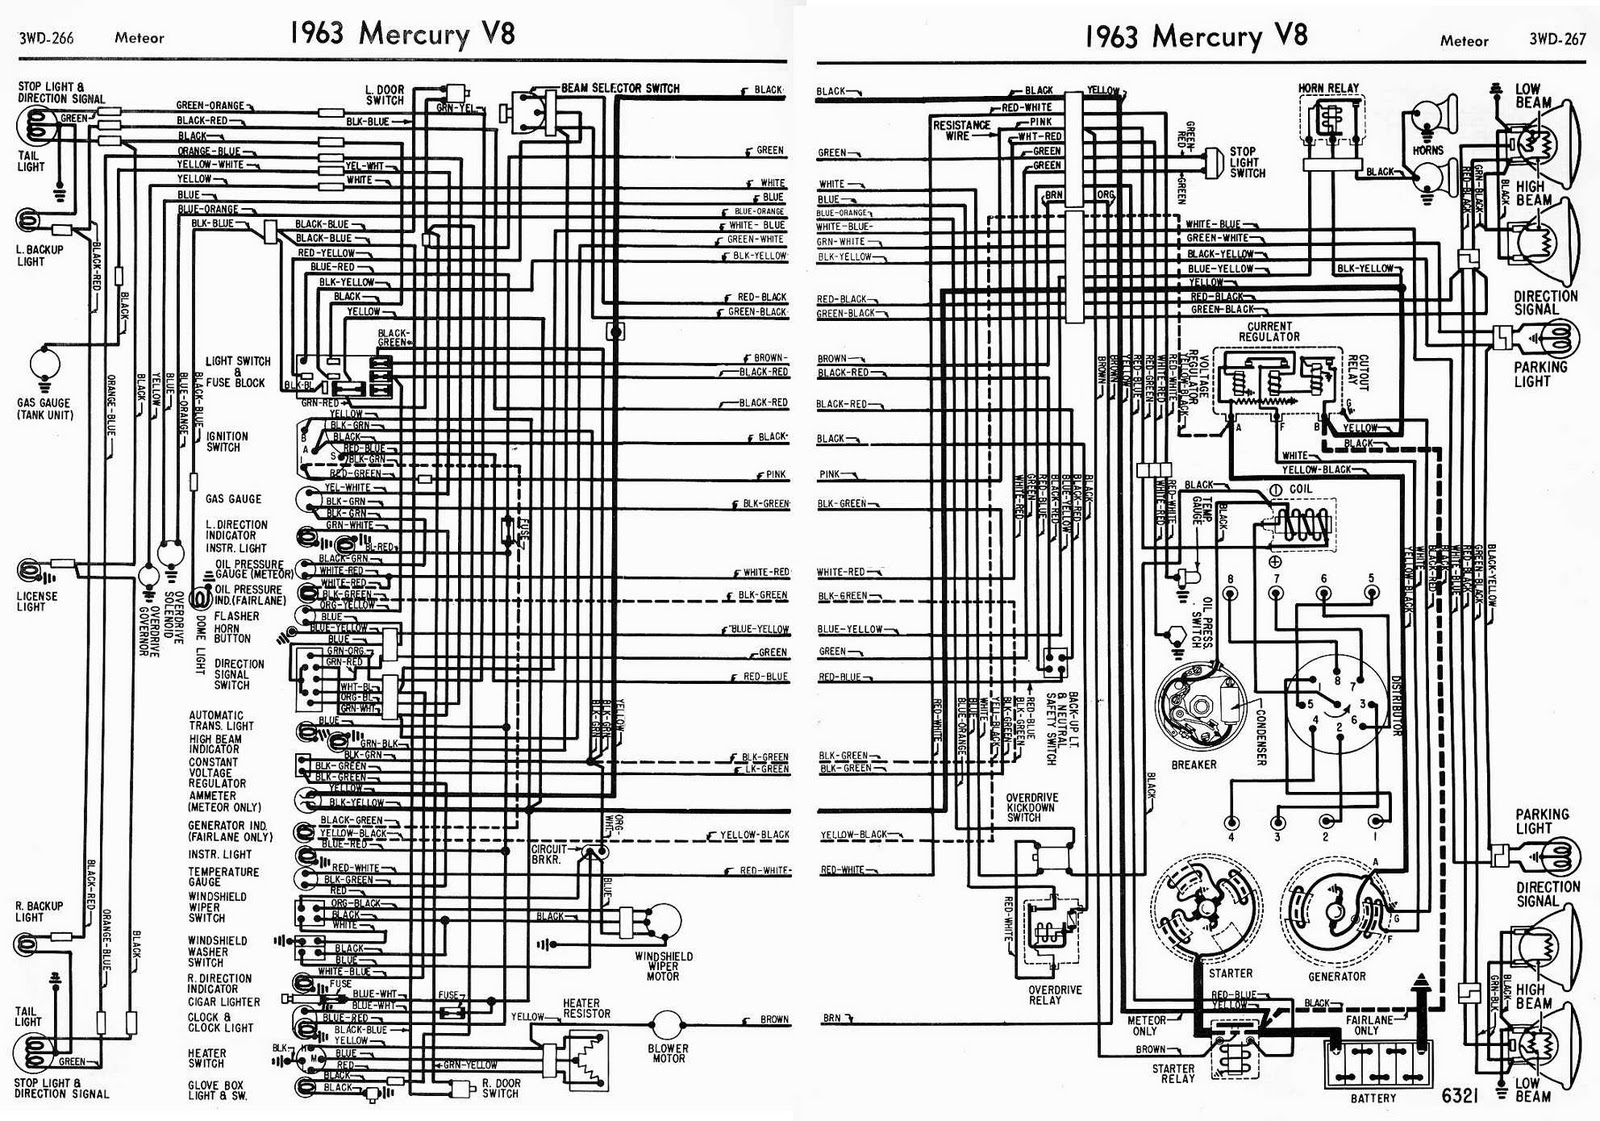 Wiring Diagrams 911 December 2011 Moto G Circuit Diagram 1963 Mercury V8 Meteor Complete